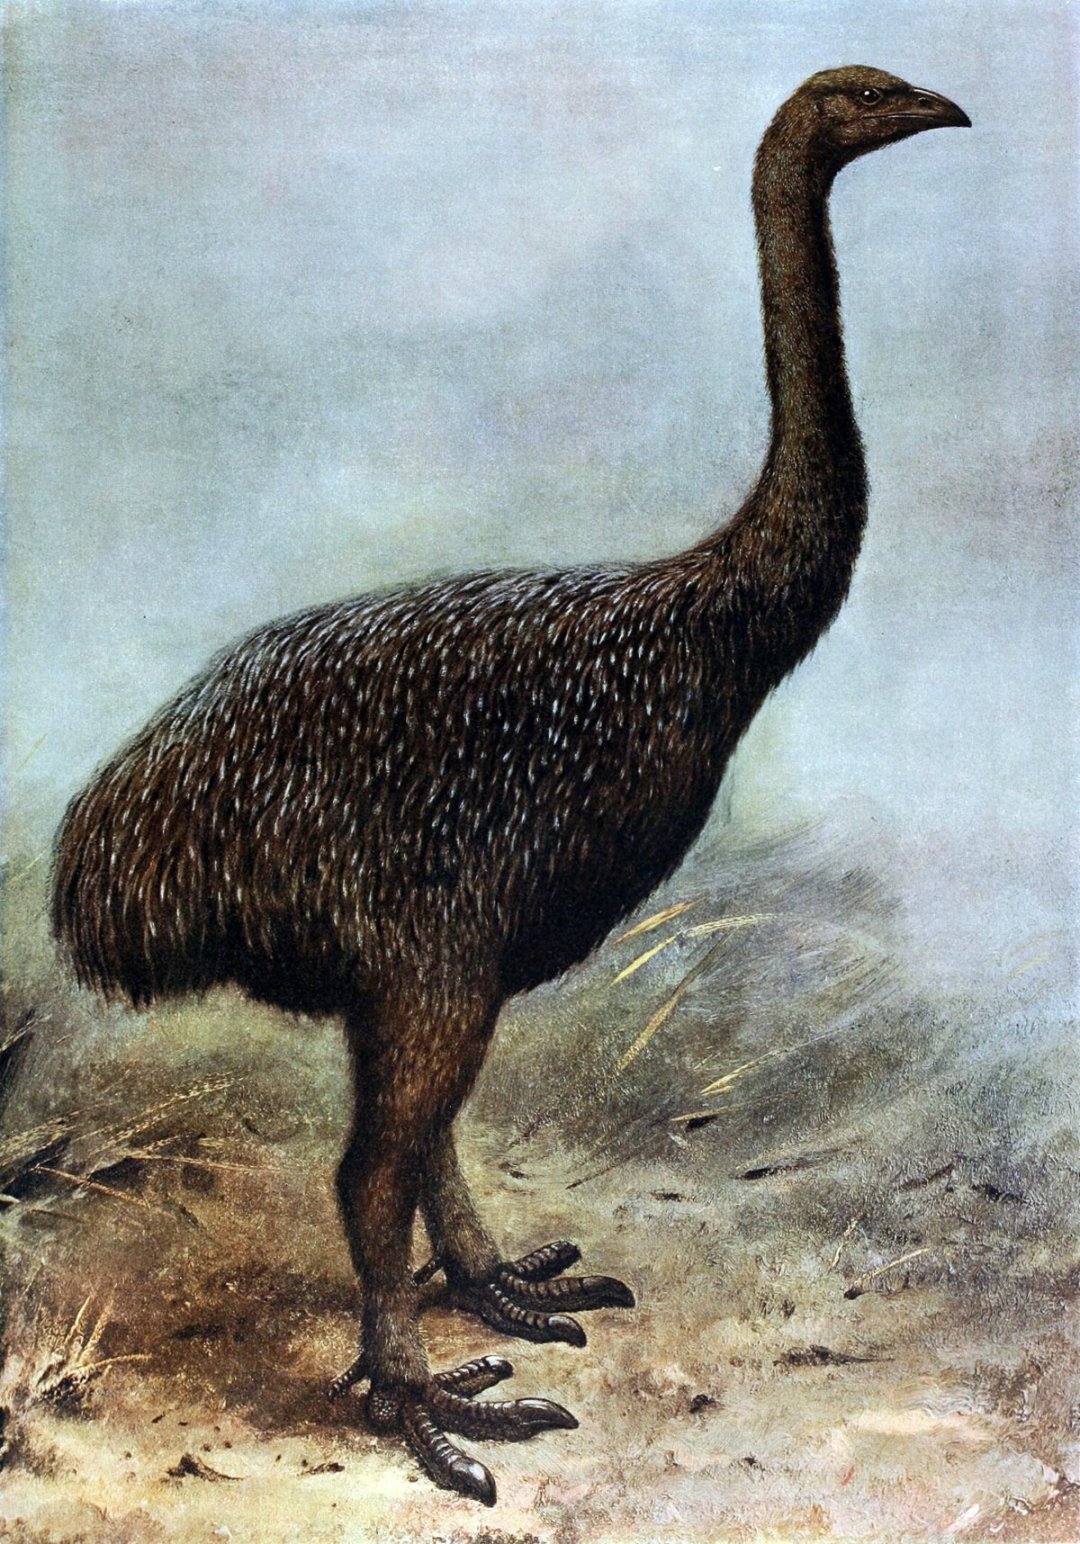 the-moa-were-a-giant-flightless-bird-from-new-zealand-that-reached-12-feet-tall-and-weighed-more-than-500-pounds-they-died-out-because-of-over-hunting-by-the-maori-by-1400-and-their-closest-relatives-have-been-found-to-be-the-flighted-south-american-.jpg